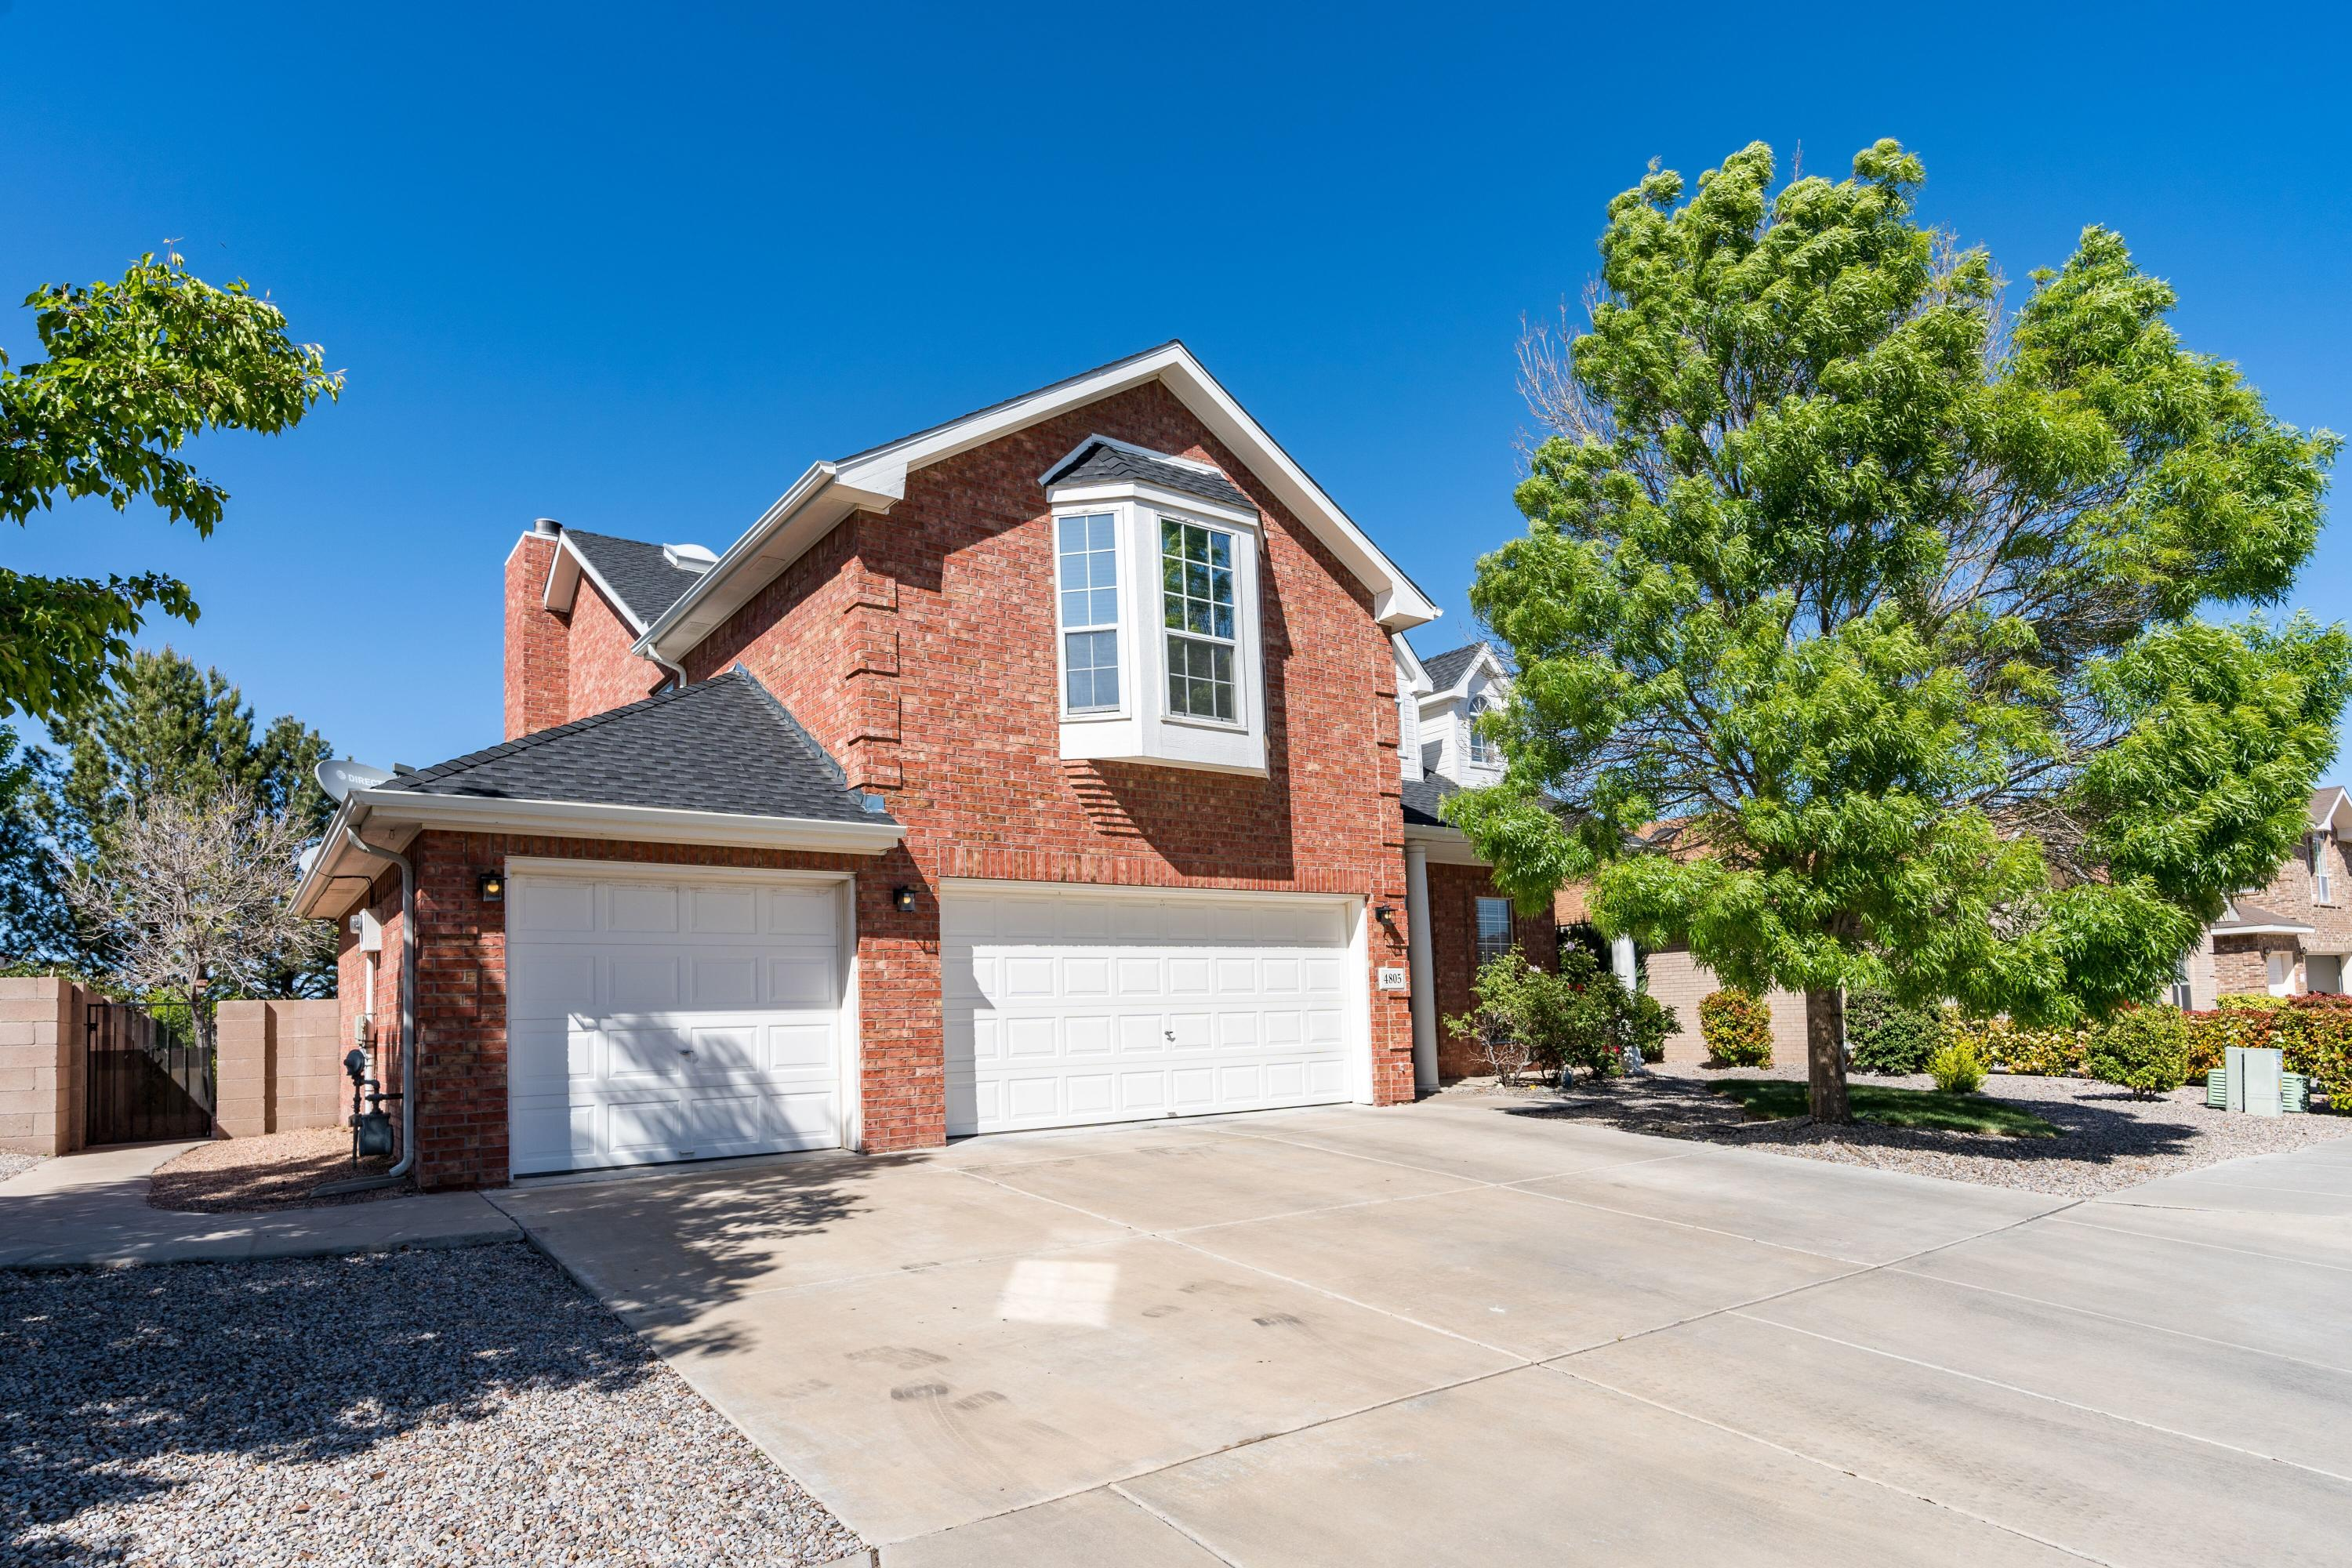 4805 Summerlin Road, Albuquerque NM 87114